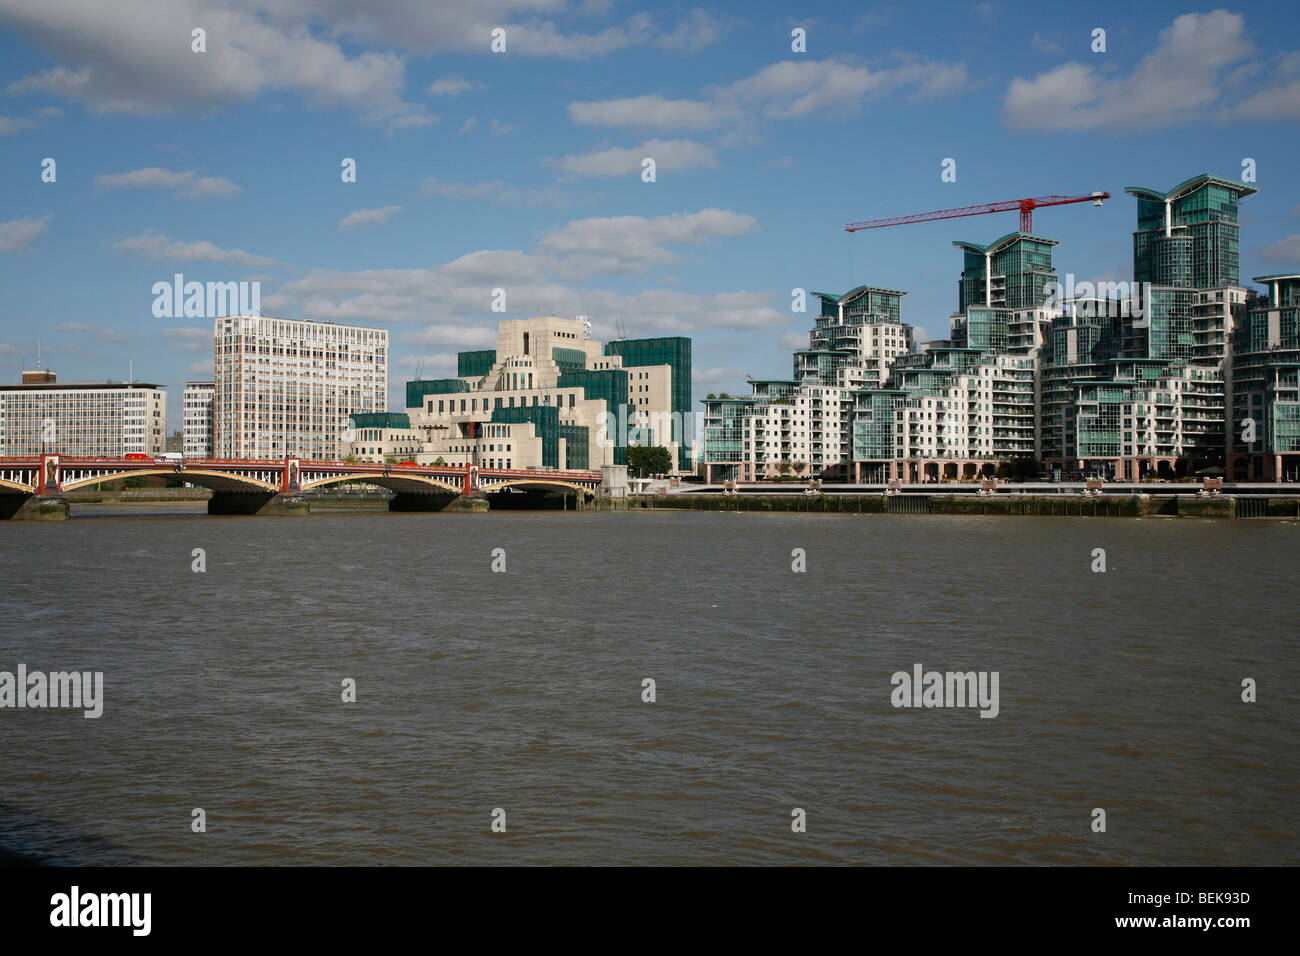 Looking across the River Thames to Vauxhall Bridge, MI6 Building and St George's Wharf, Vauxhall, London, UK - Stock Image